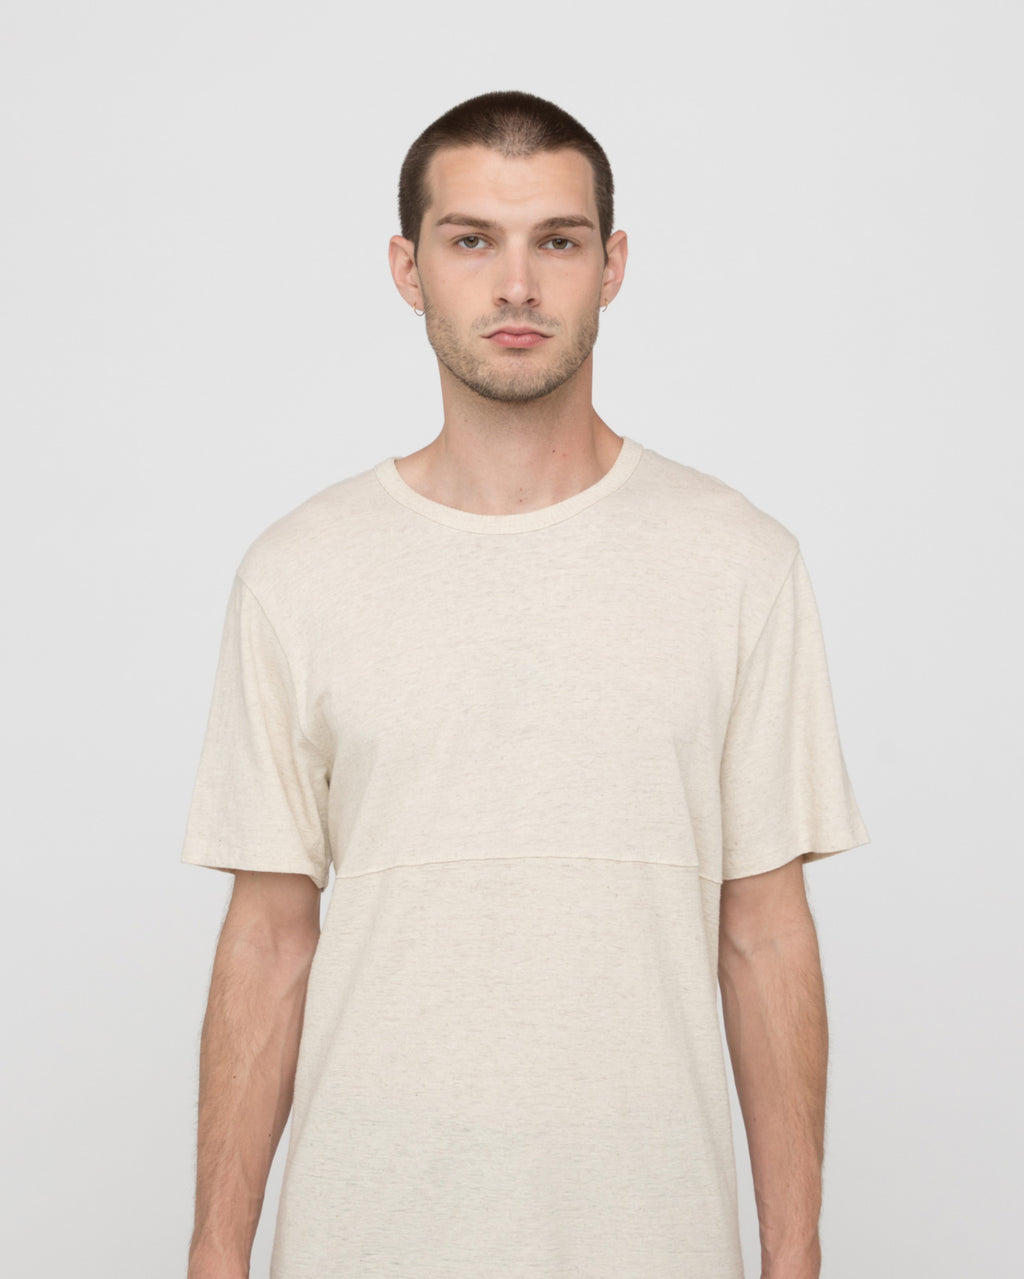 The Oria Tee in Vintage White